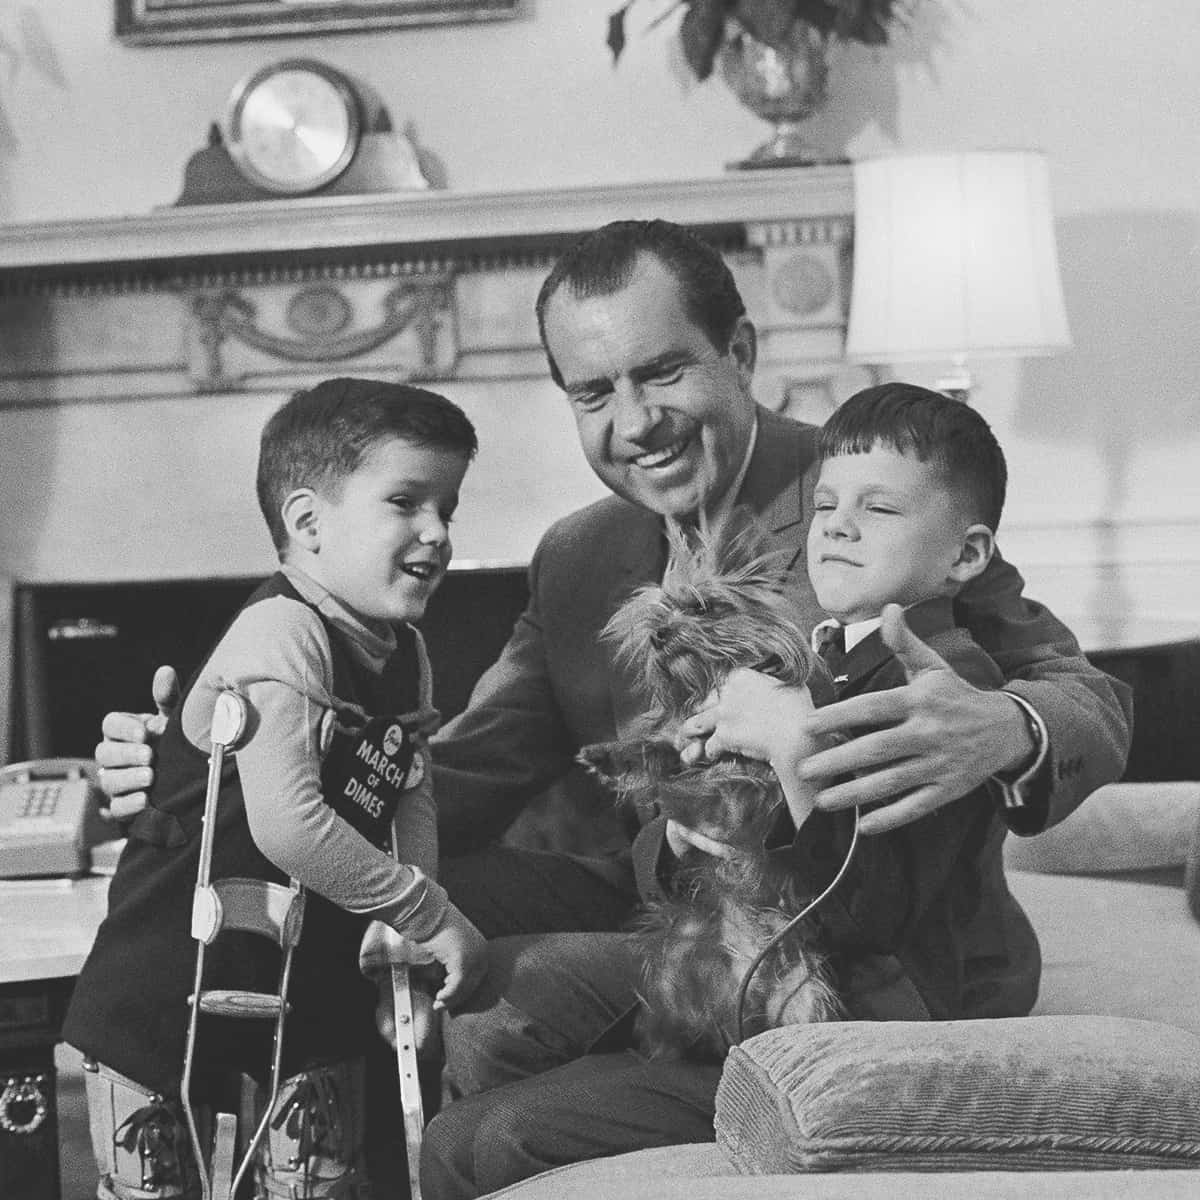 FILE – In this Feb. 5, 1969, file photo President Richard Nixon smiles as he shows off one of the White House pets tiny Yorkshire terrier Pasha to two junior visitors in his office in Washington. His guests are five-year-old Tracy Greenwood, the March of Dimes National Poster Child, and his 7-year-old brother Jamie. (AP Photo, File)